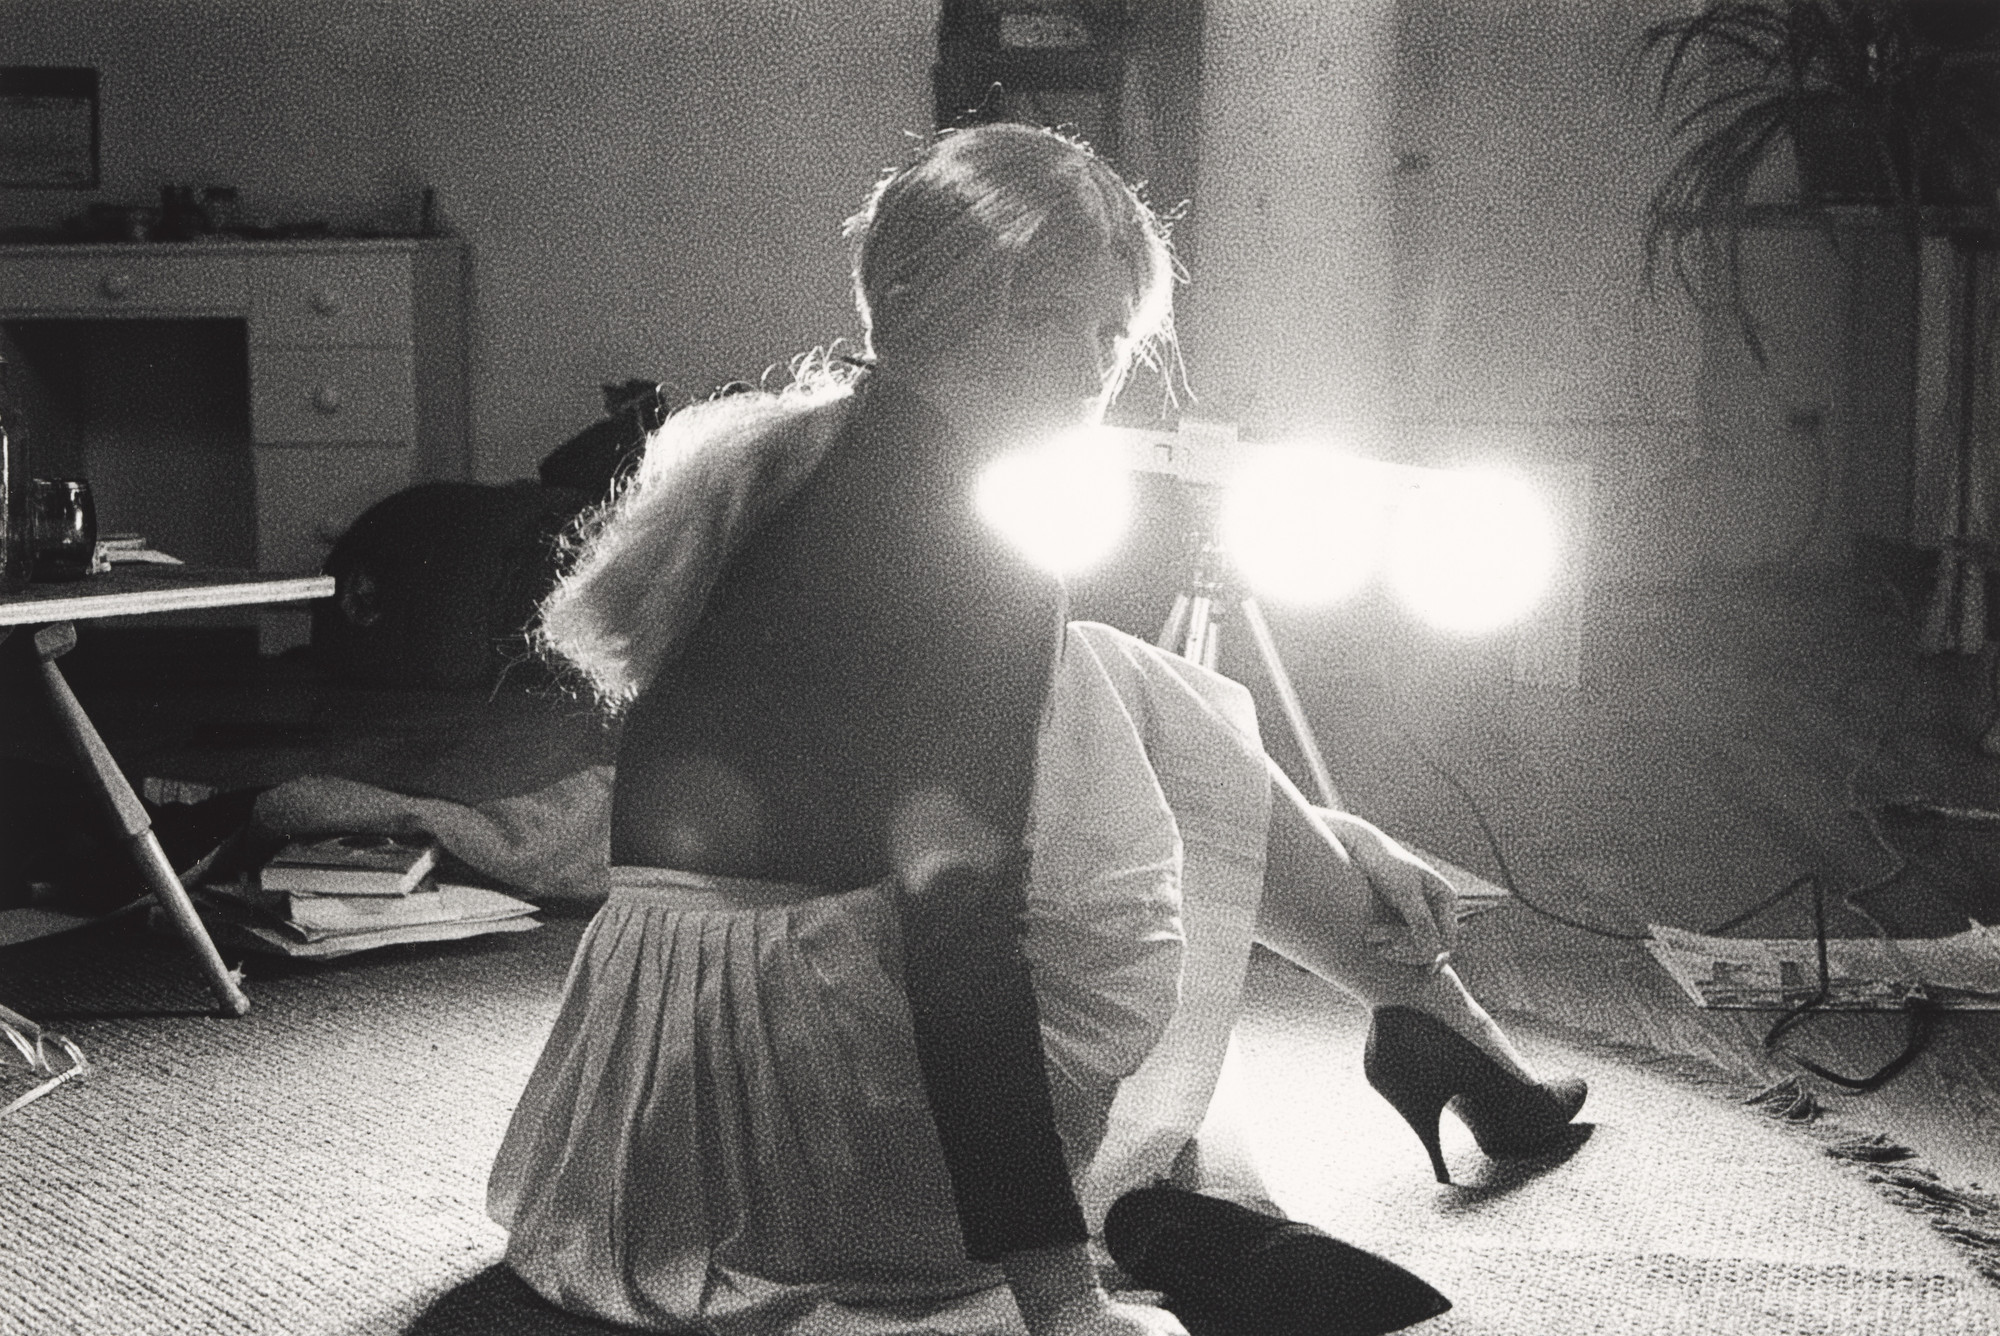 Cindy Sherman. Untitled Film Still #62. 1977